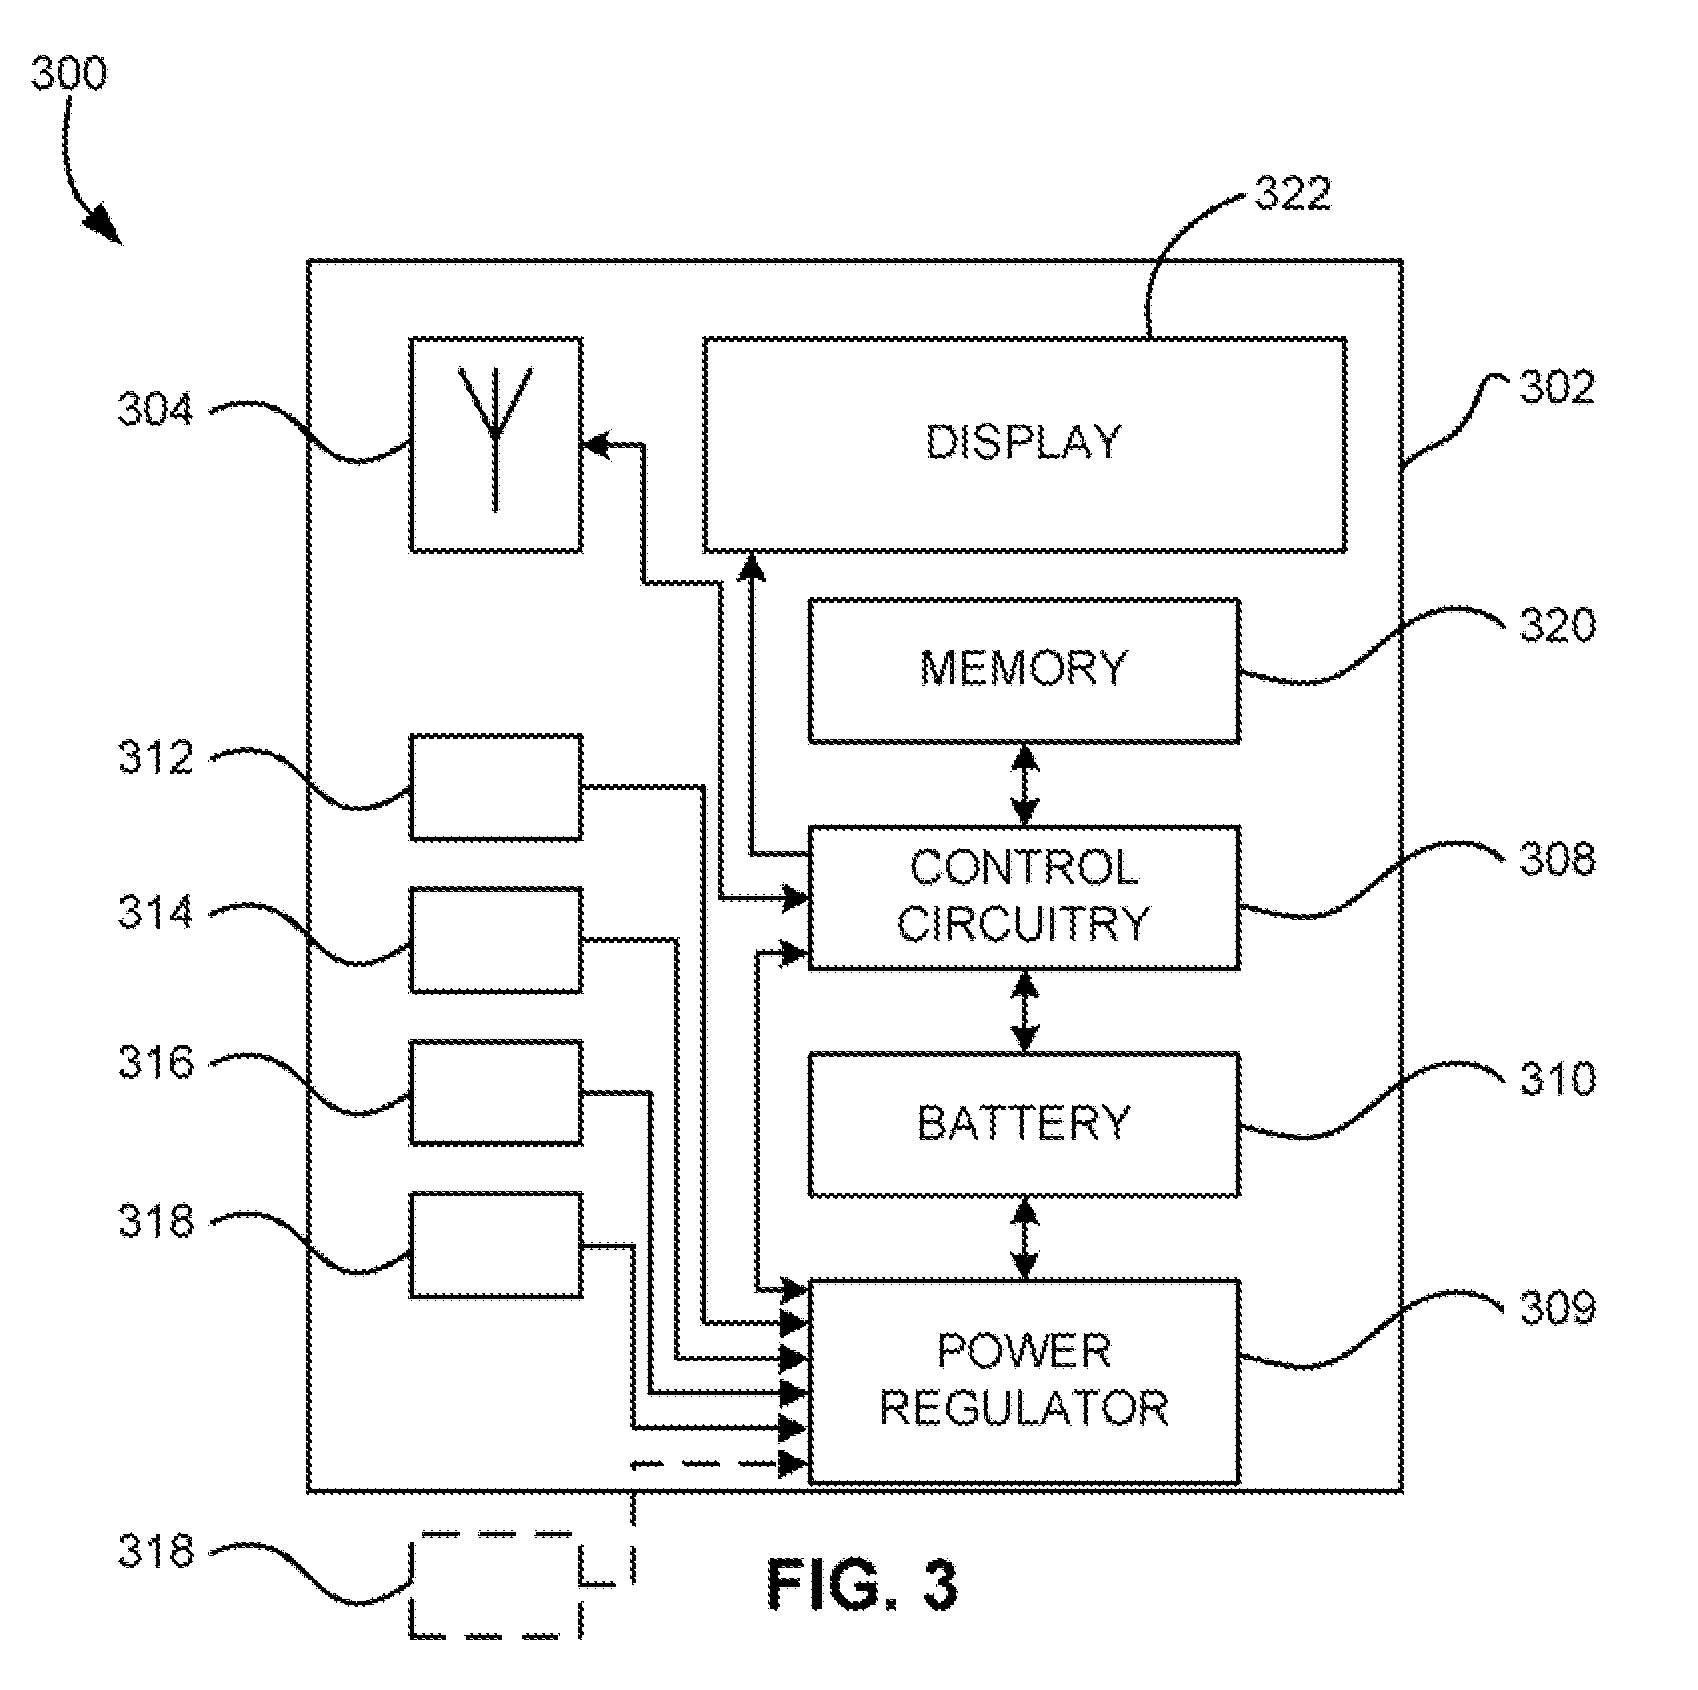 Patent Us 8941496 B2 Electrical Motor Control Circuits V250 By Business Industrial Network